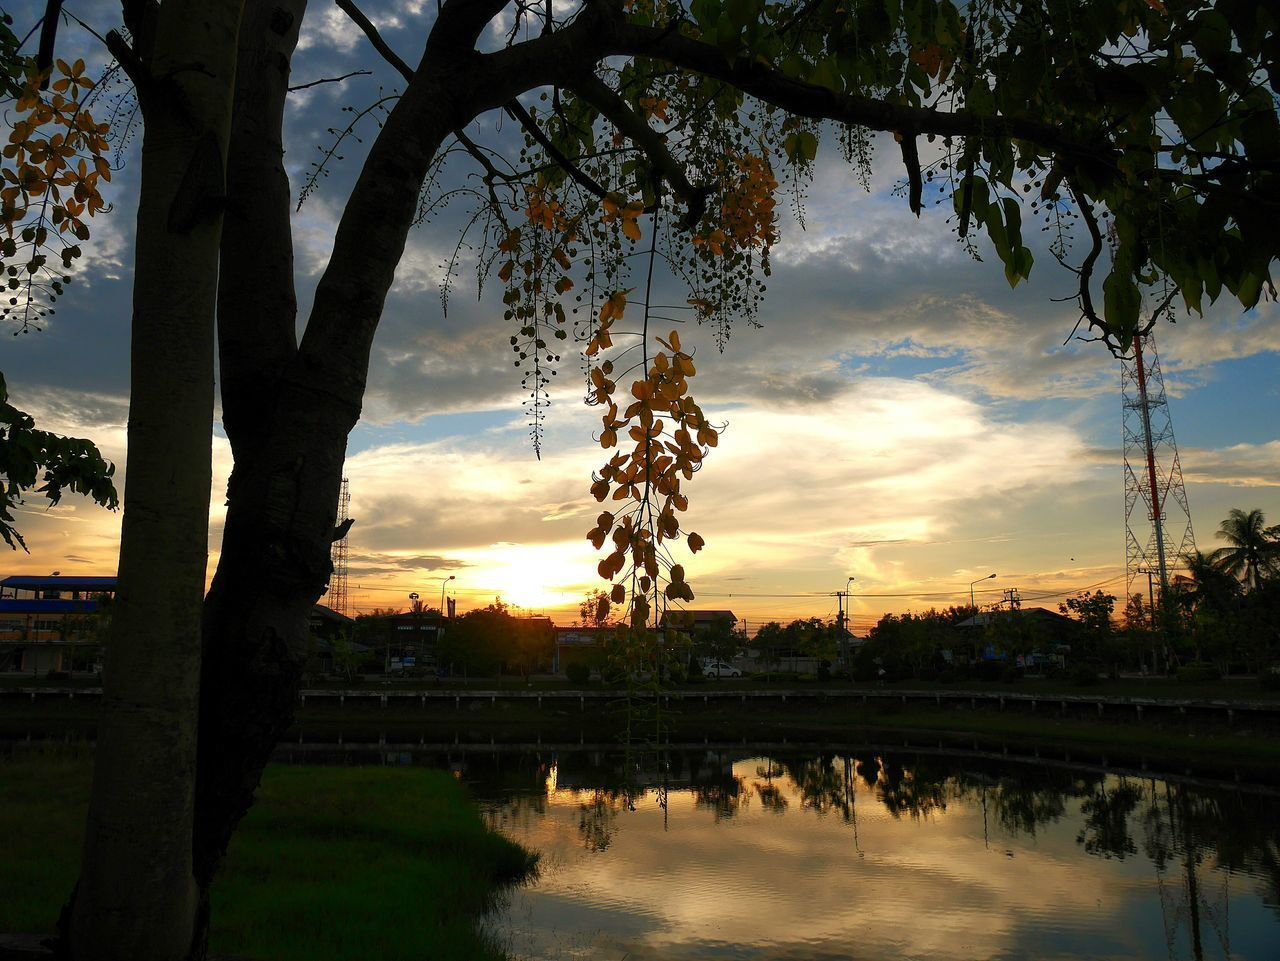 tree, reflection, sunset, sky, water, nature, silhouette, cloud - sky, beauty in nature, branch, tranquil scene, outdoors, no people, growth, scenics, tranquility, lake, architecture, day